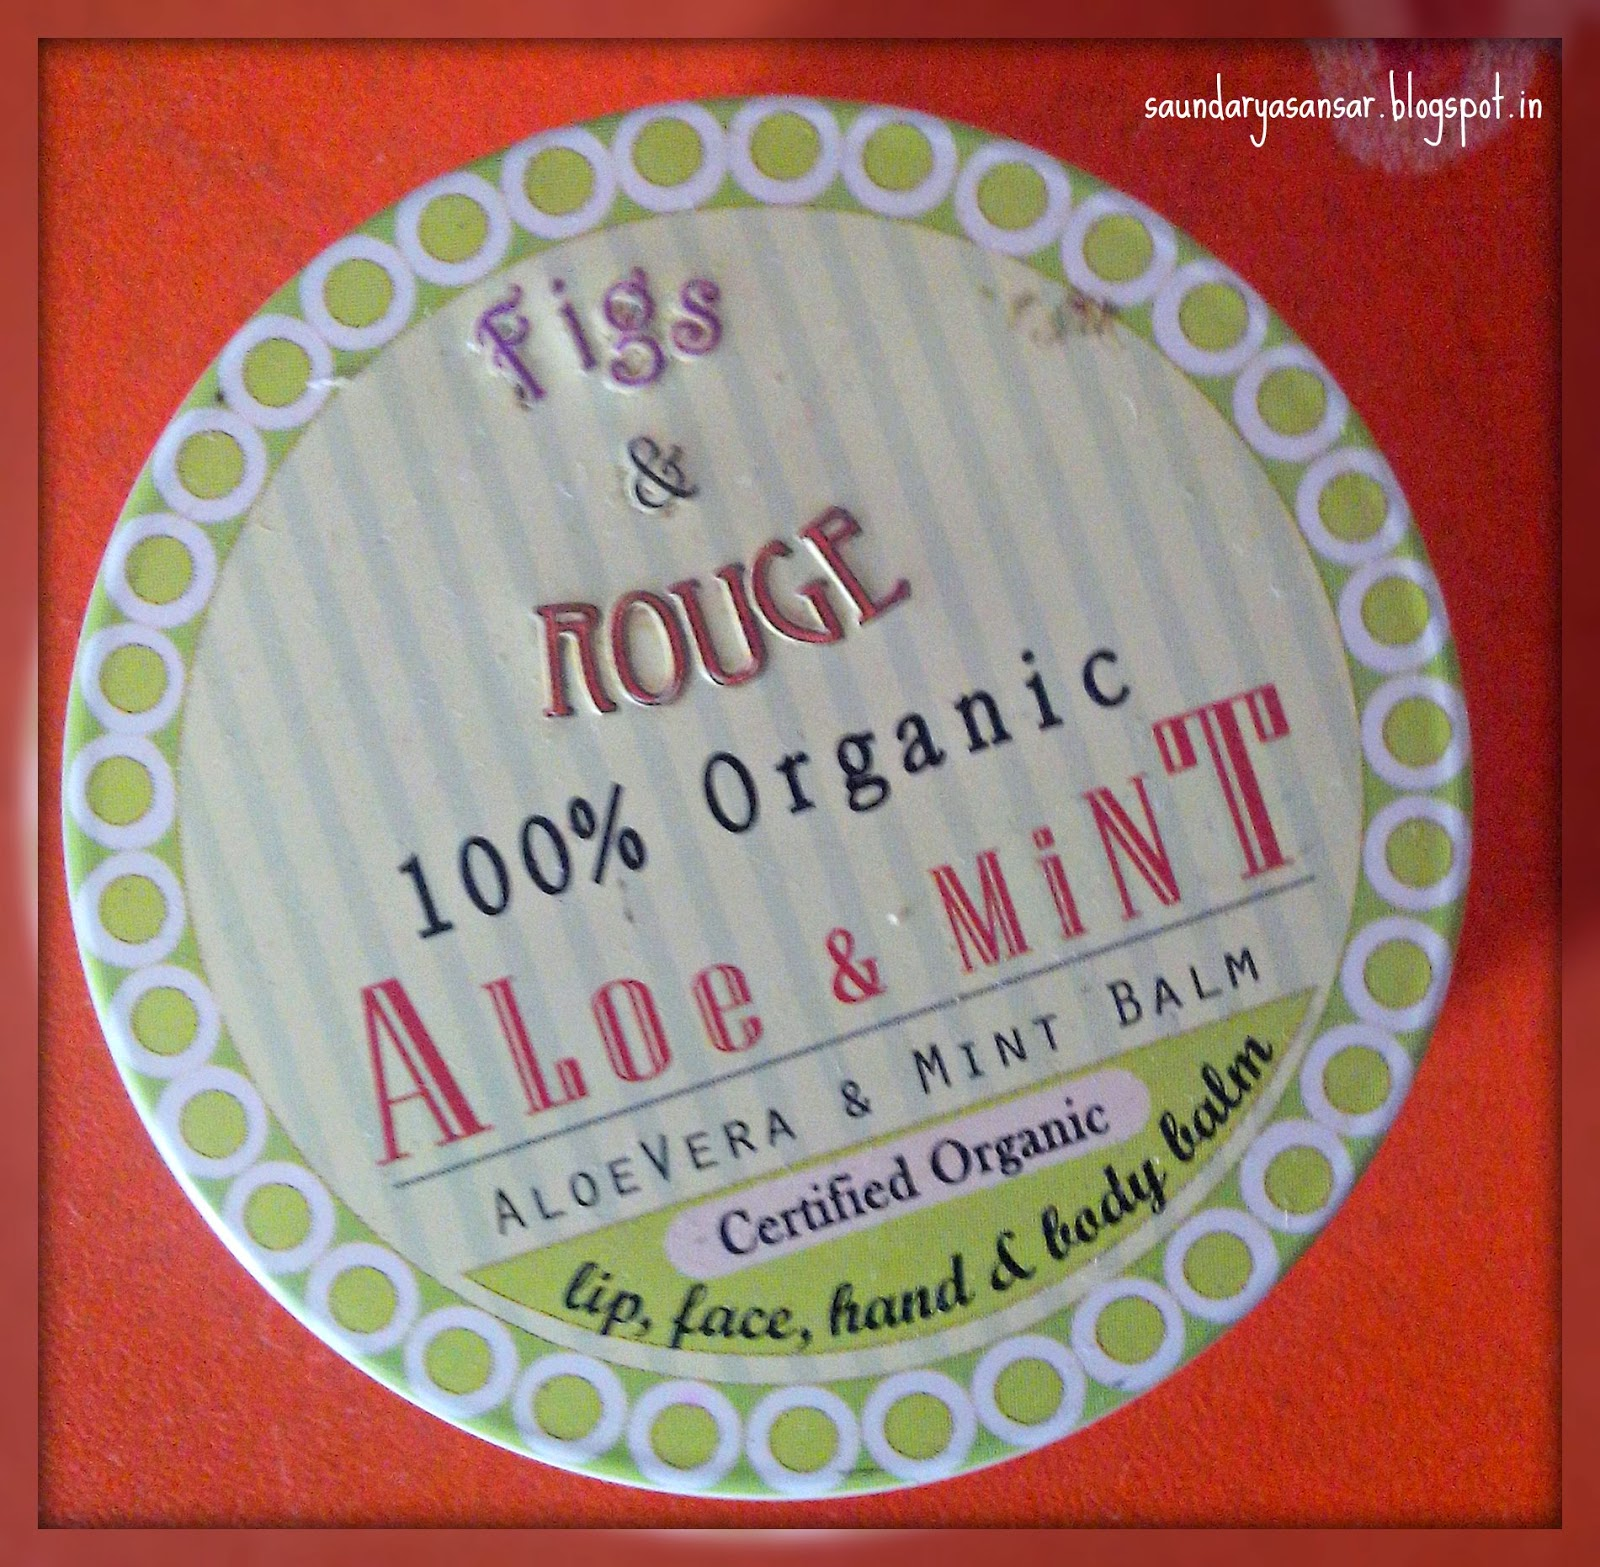 FIGS-&-ROUGE-Aloevera-&-Mint-Balm-review